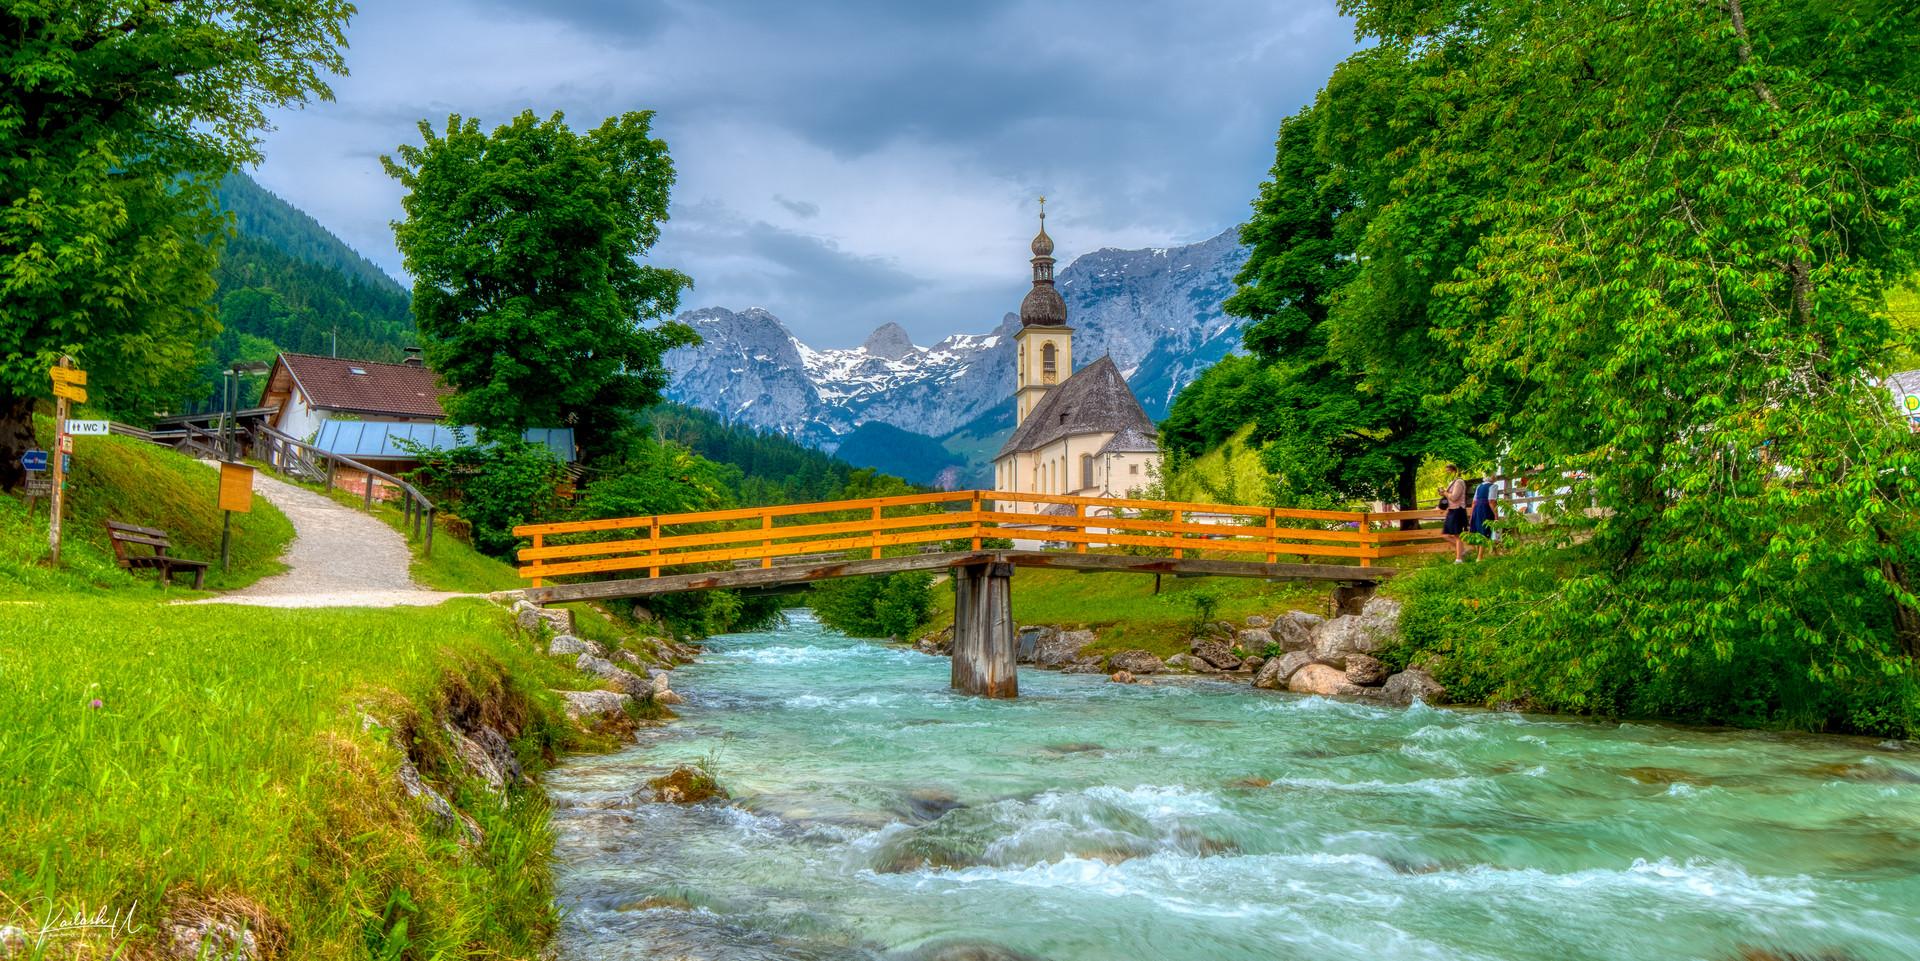 Church in Ramsau bei Berchtesgaden, Germany